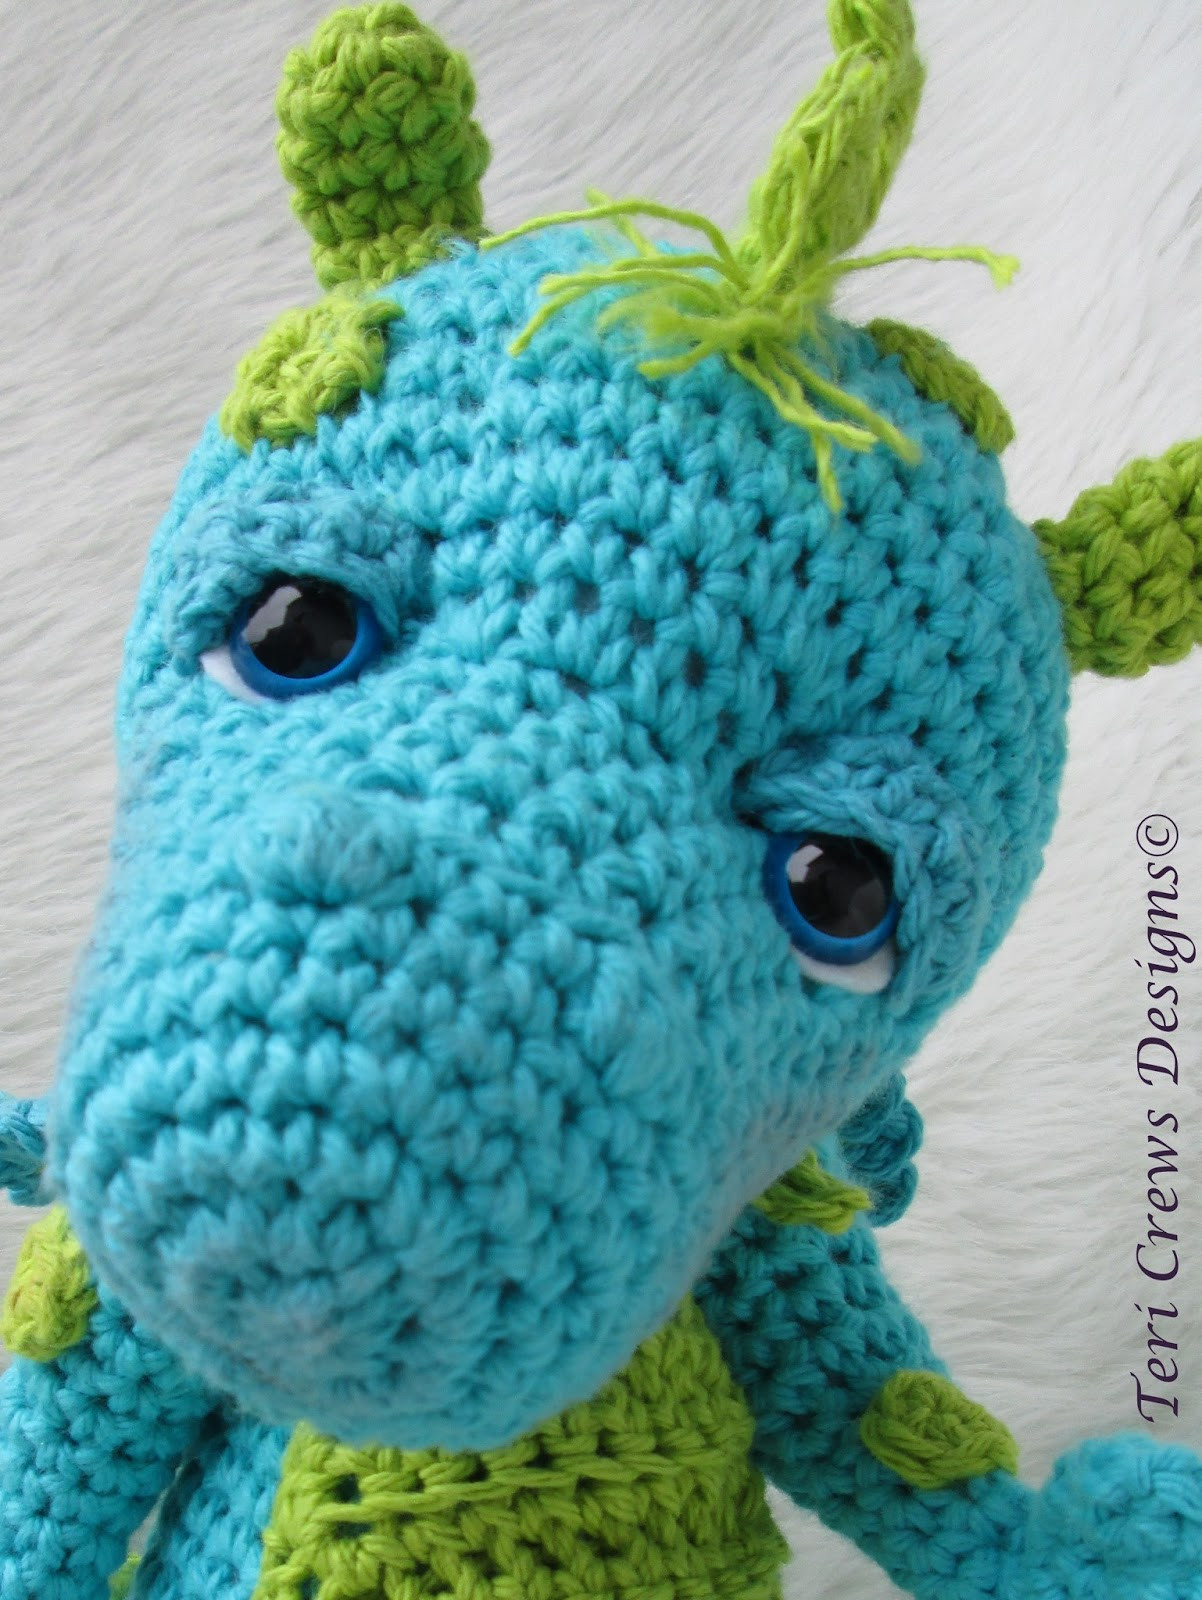 Free Crochet Dragon Pattern Awesome Teri S Blog New Cute Dragon Crochet Pattern Of Amazing 50 Images Free Crochet Dragon Pattern